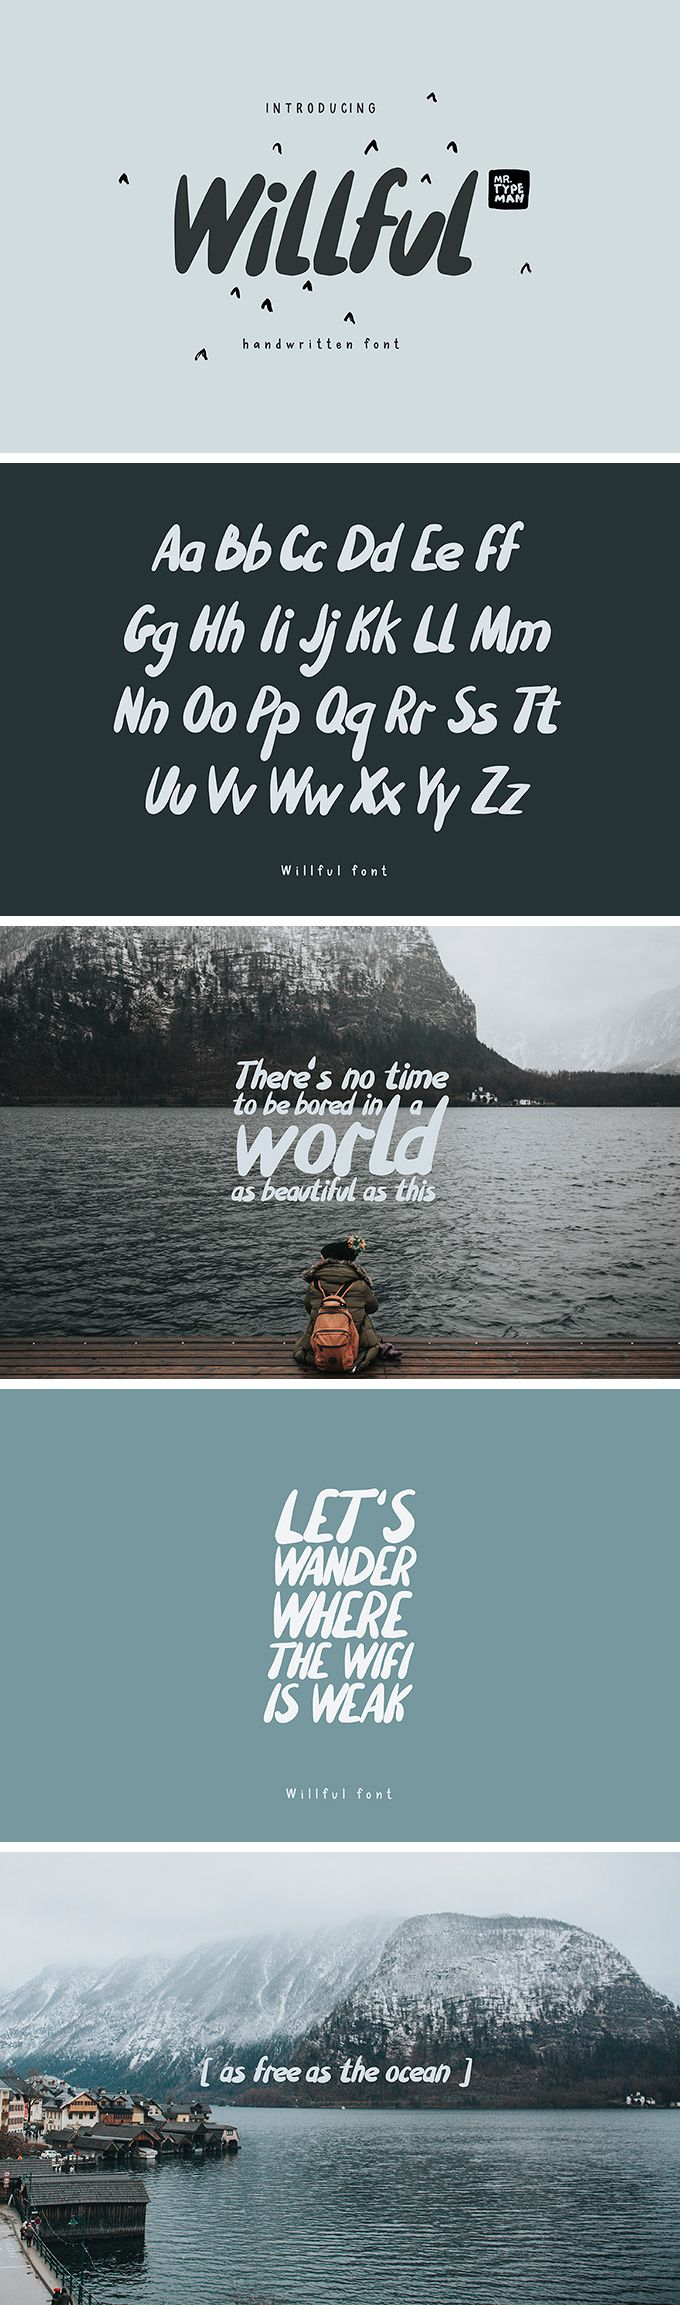 Willful Handwritten Brush Font - download freebie by PixelBuddha